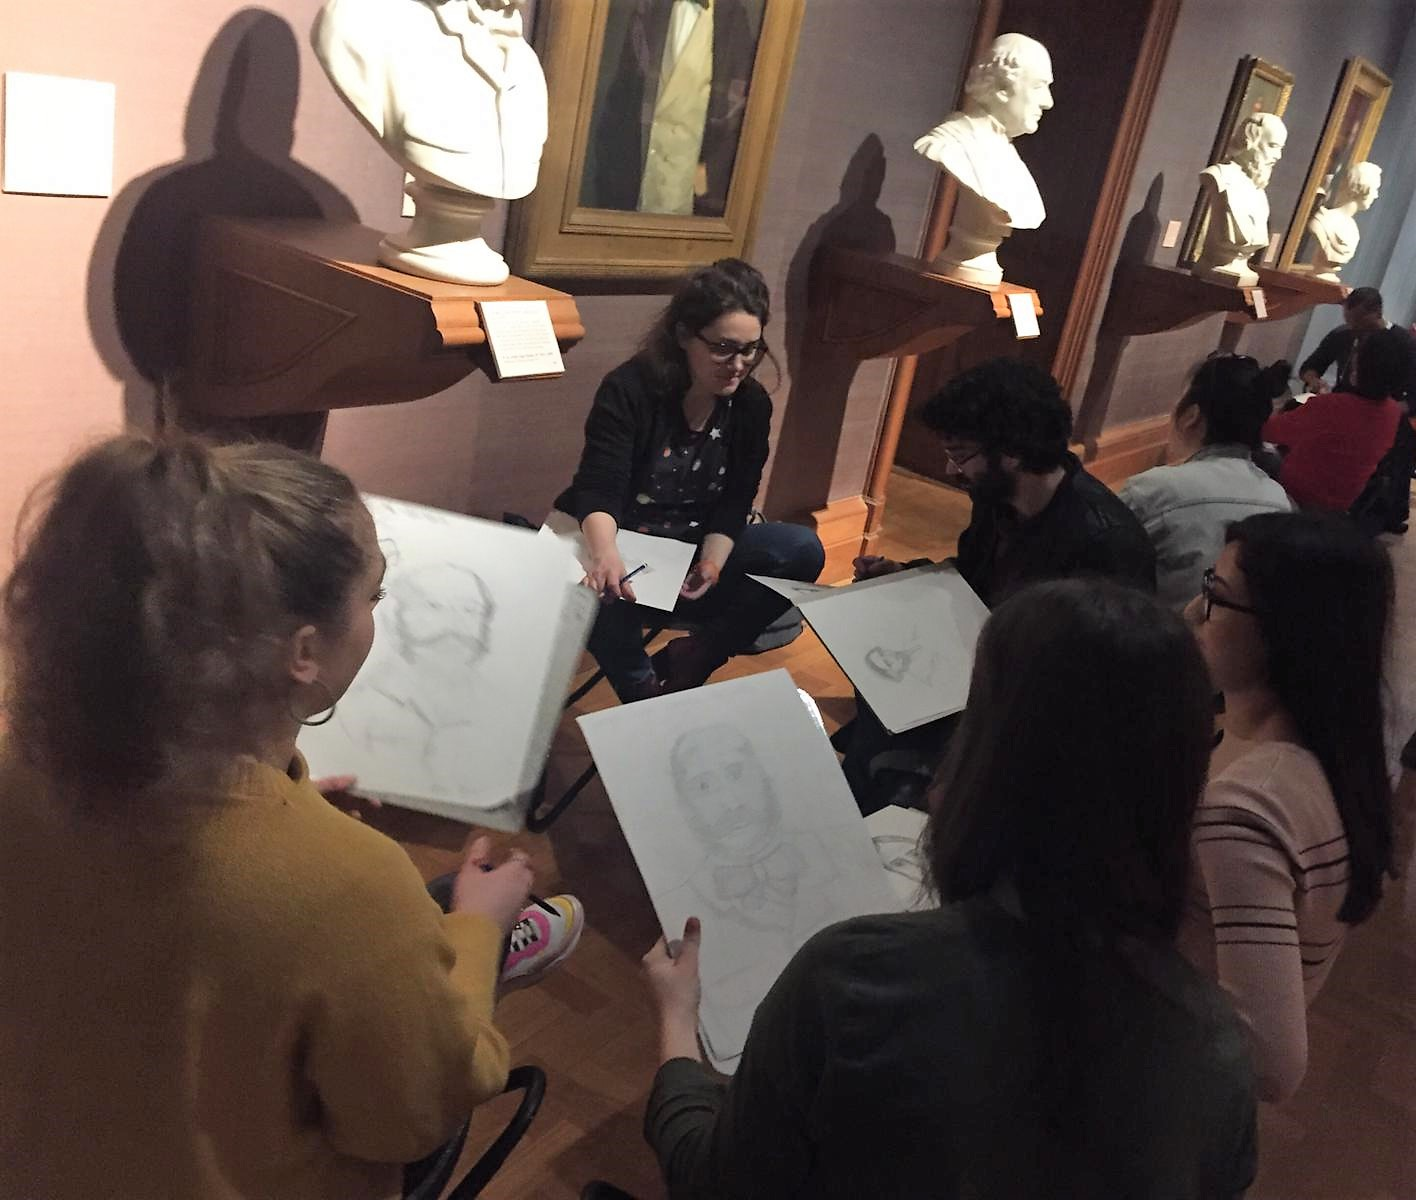 INGLA GETS ARTISTIC AT THE NATIONAL PORTRAIT GALLERY